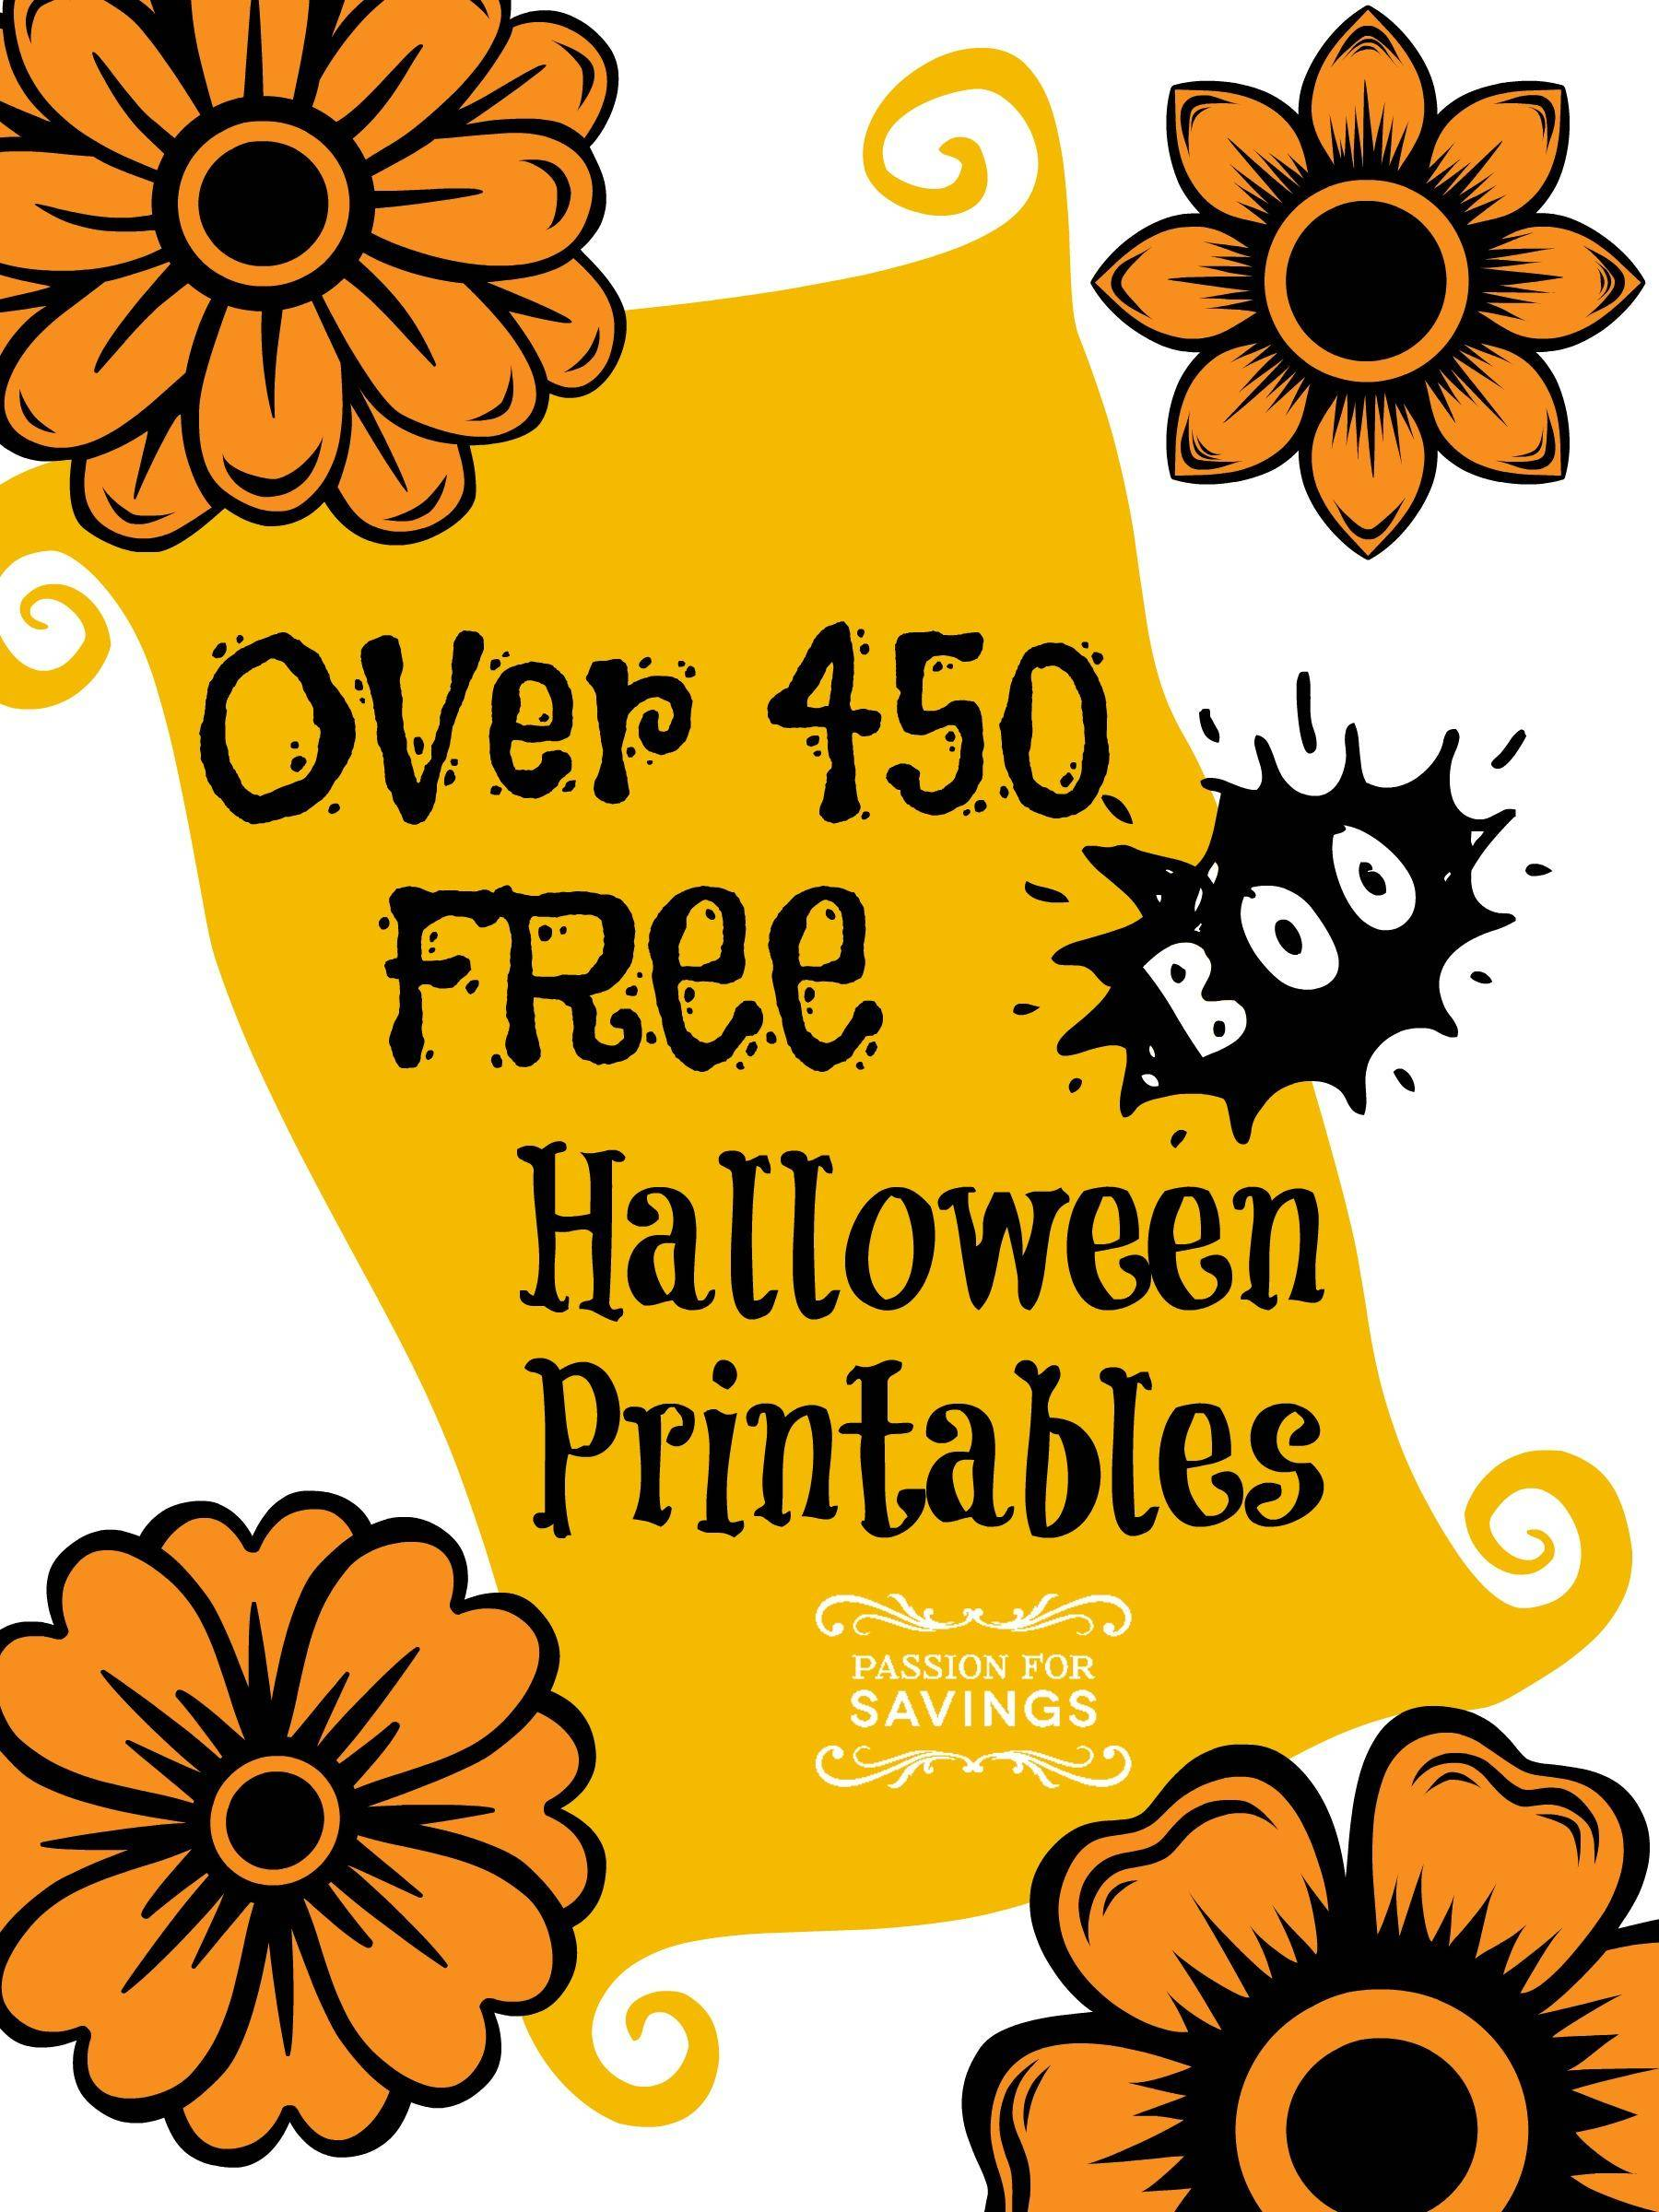 Over 450 Free Halloween Printables To Download